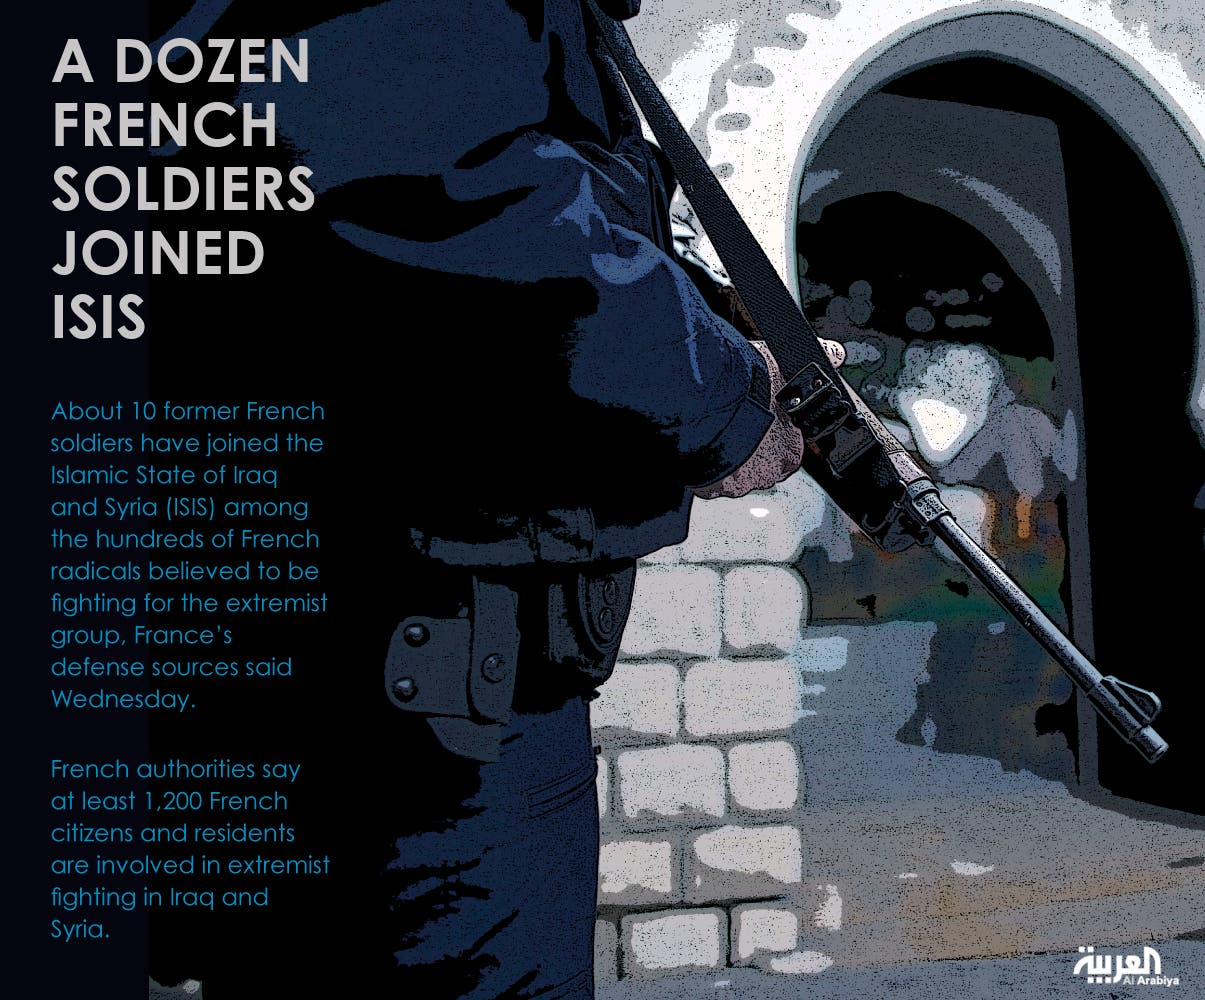 Infographic: A dozen French soldiers joined ISIS